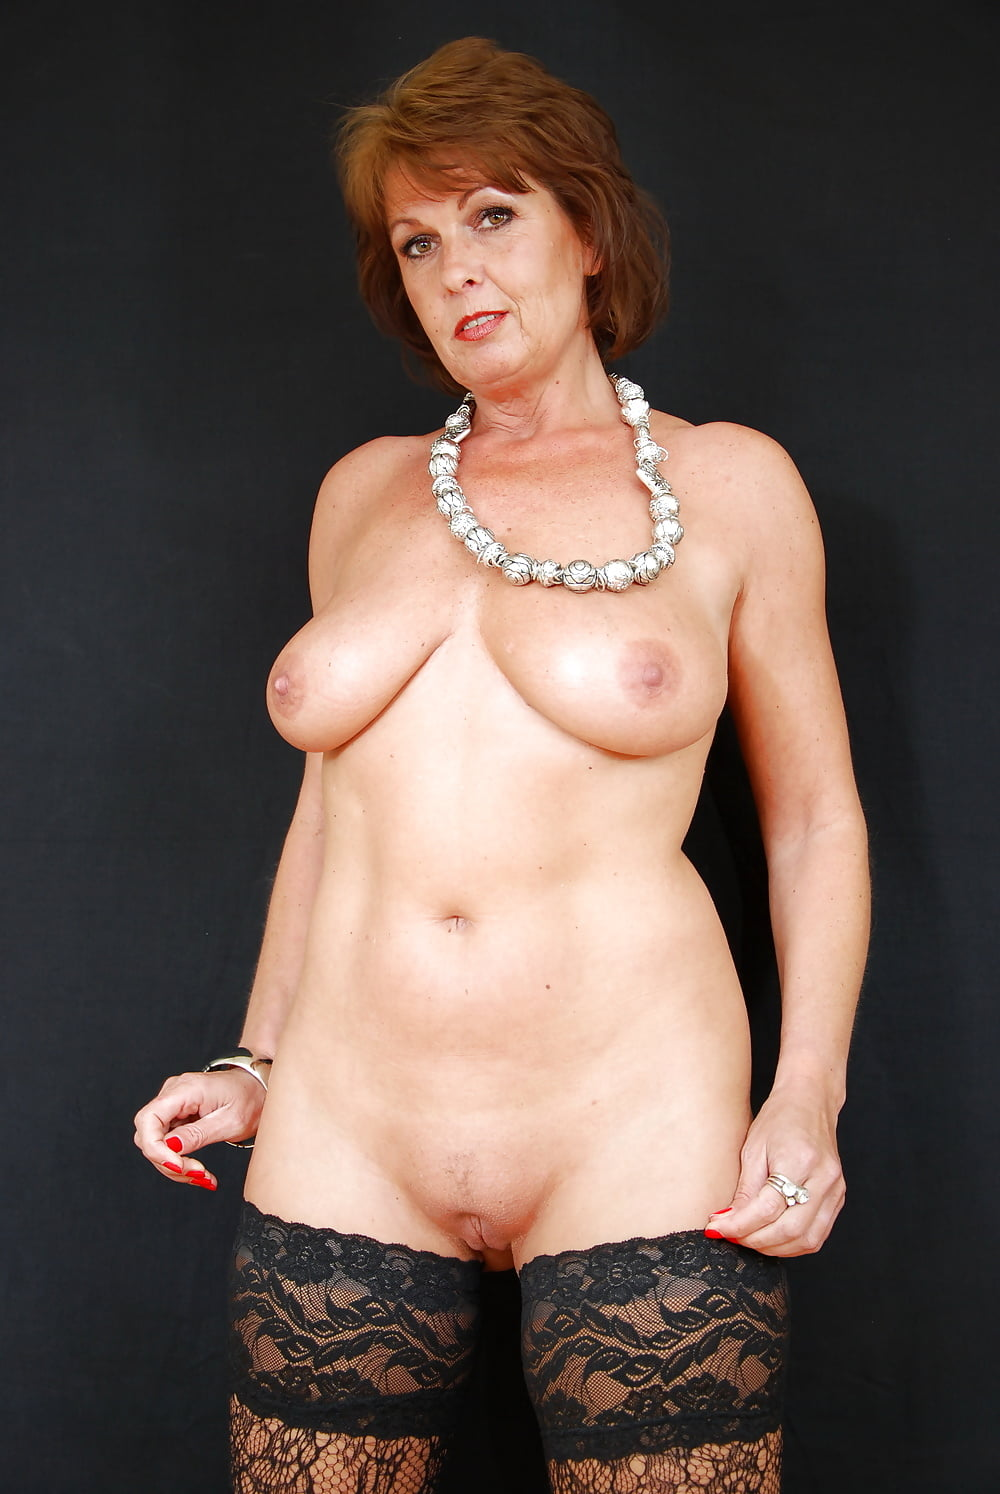 Mature women picture — img 11